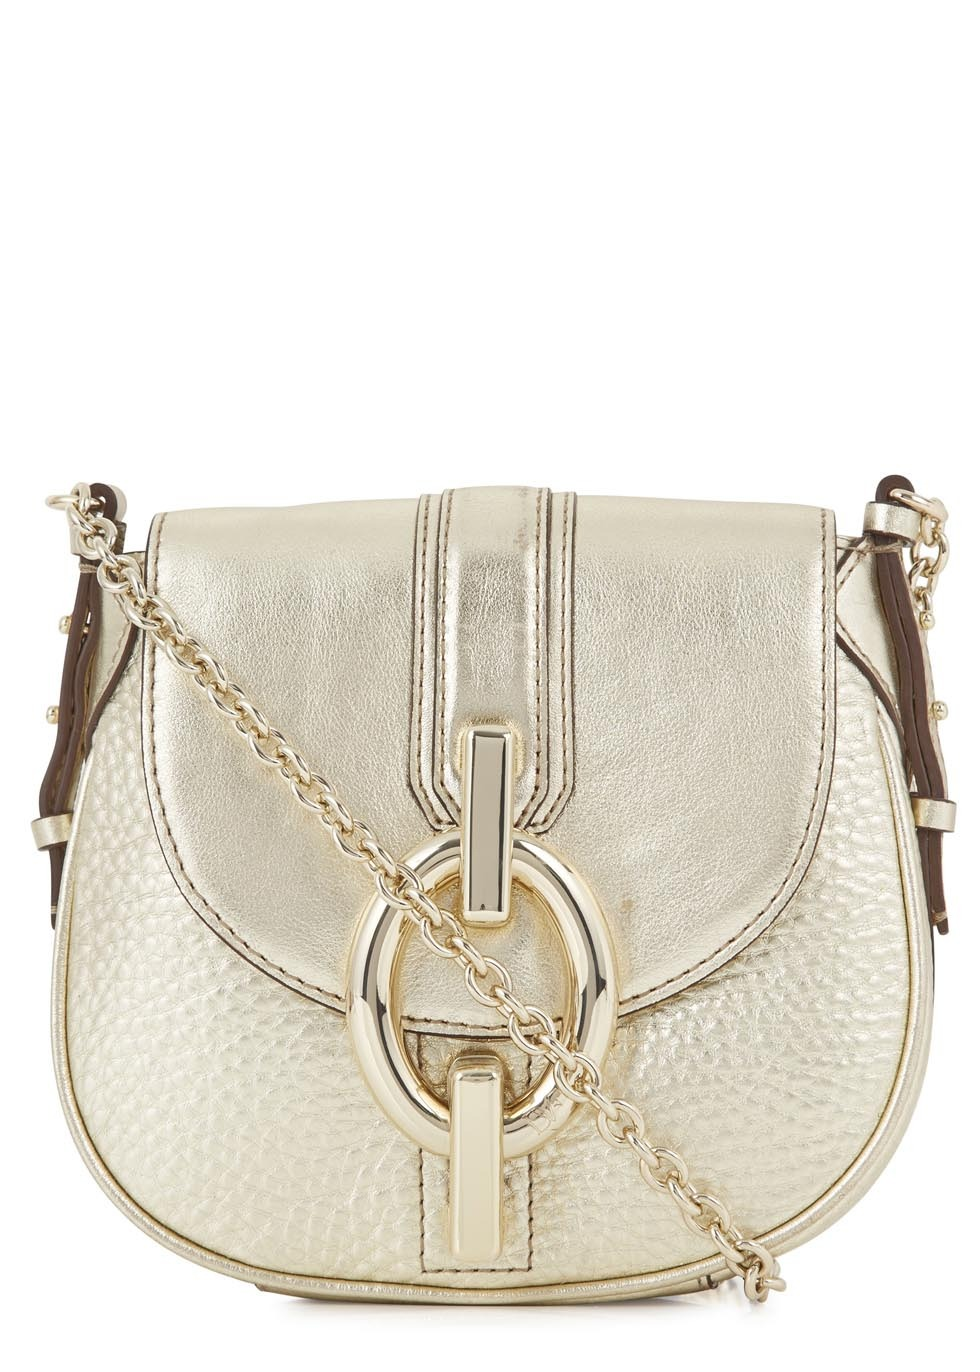 Sutra Mini Metallic Leather Cross Body Bag - predominant colour: gold; occasions: casual, creative work; type of pattern: standard; style: messenger; length: across body/long; size: standard; material: leather; pattern: plain; finish: metallic; embellishment: chain/metal; trends: shimmery metallics; season: s/s 2014